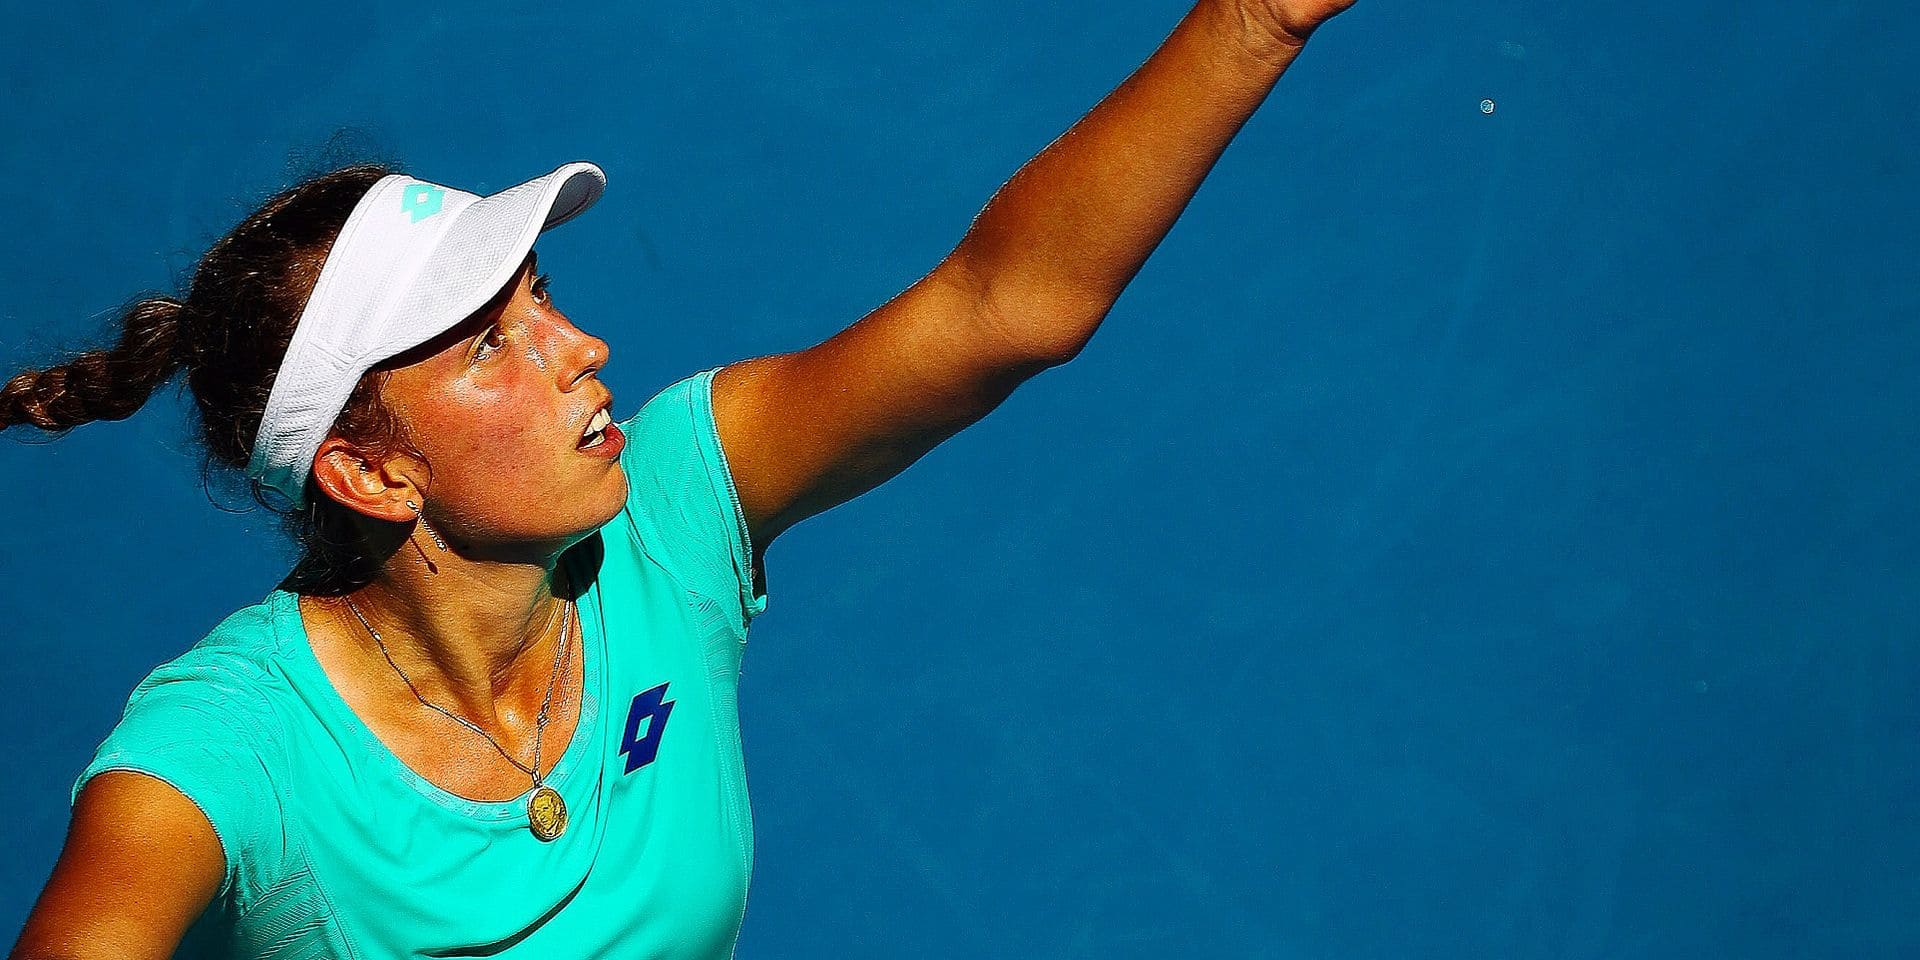 Belgian Elise Mertens pictured in action during a tennis match between Belgian Elise Mertens (WTA 37) and French Alize Cornet (WTA 42), in the third round of the women's singles tournament at the 'Australian Open' tennis Grand Slam, Thursday 18 January 2018 in Melbourne Park, Melbourne, Australia. This first grand slam of the season will be taking place from 15 to 28 January. BELGA PHOTO PATRICK HAMILTON